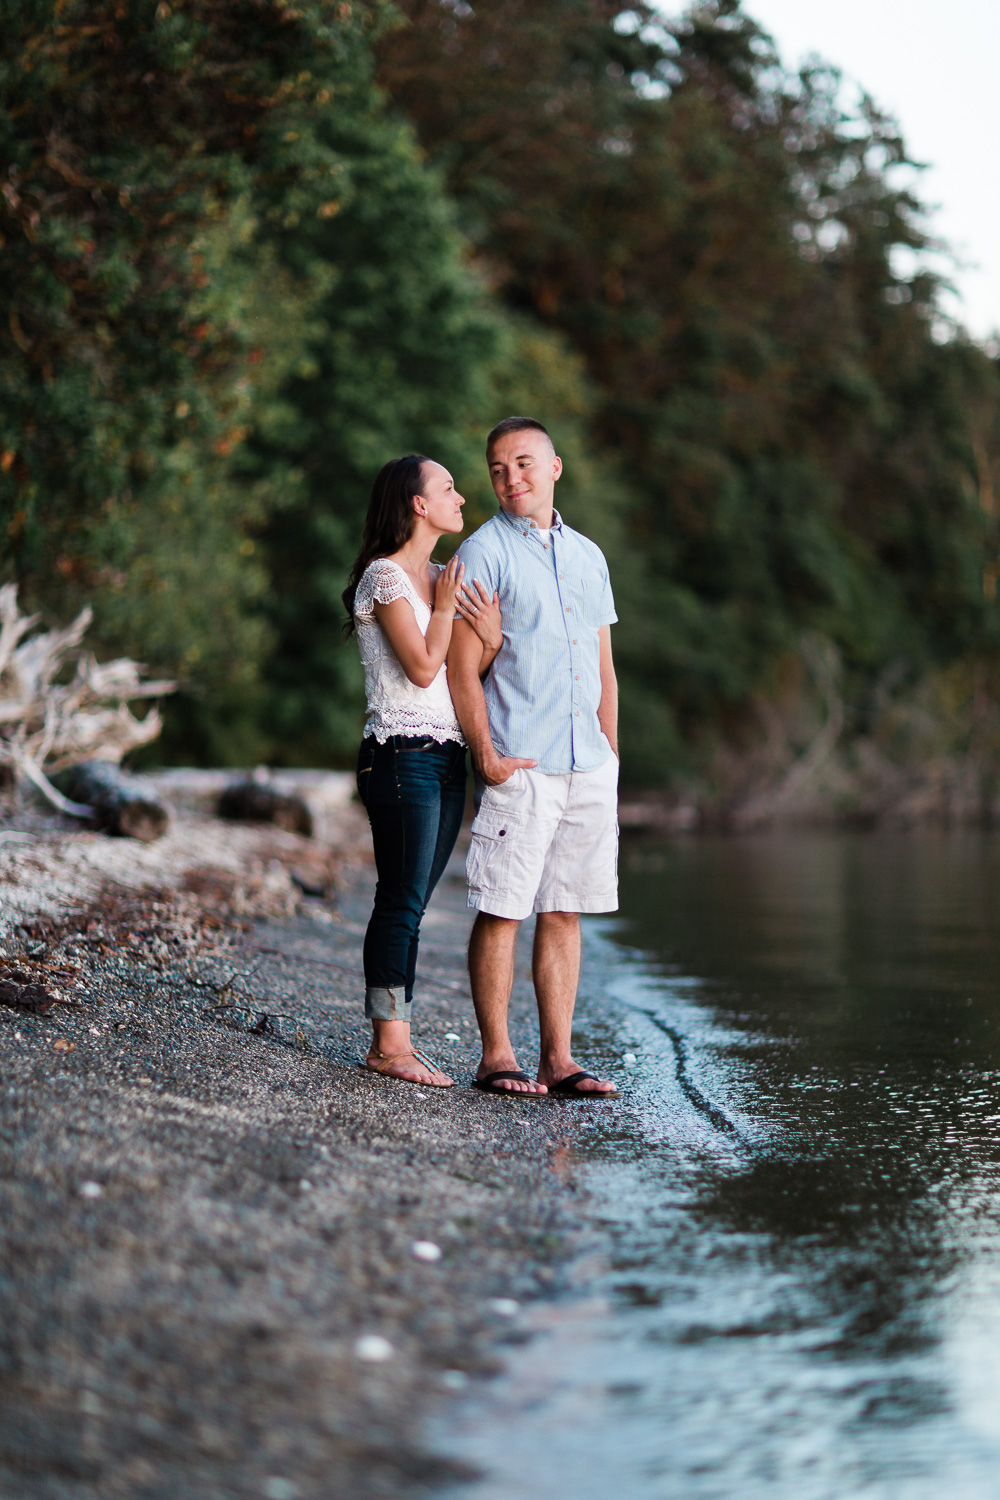 olympia washington engagement photography-082.jpg